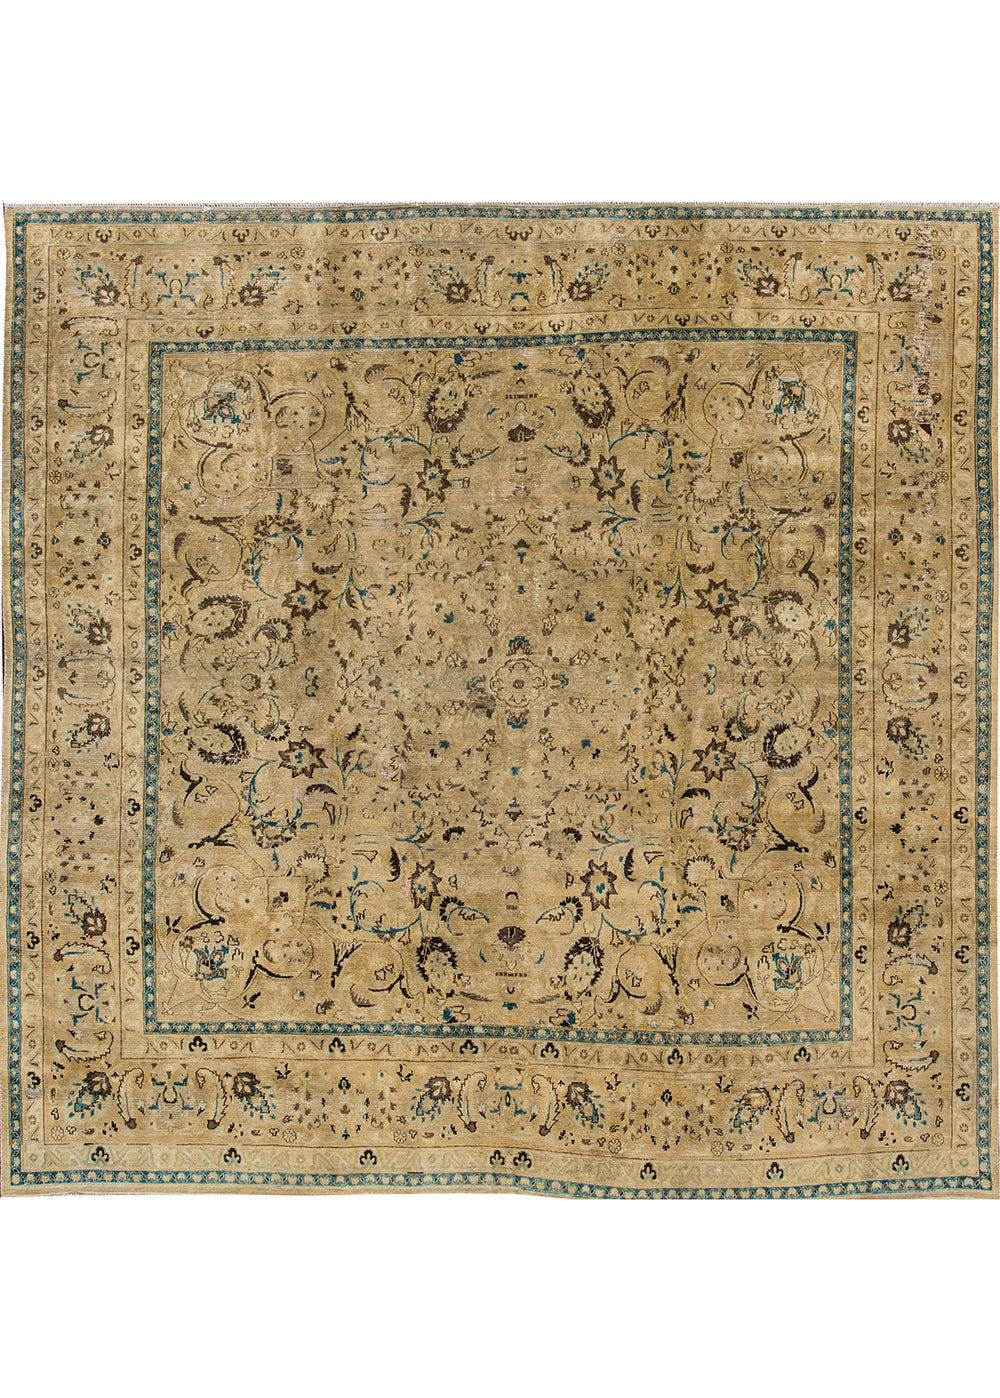 Antique Tabriz Rug, 10' X 10'